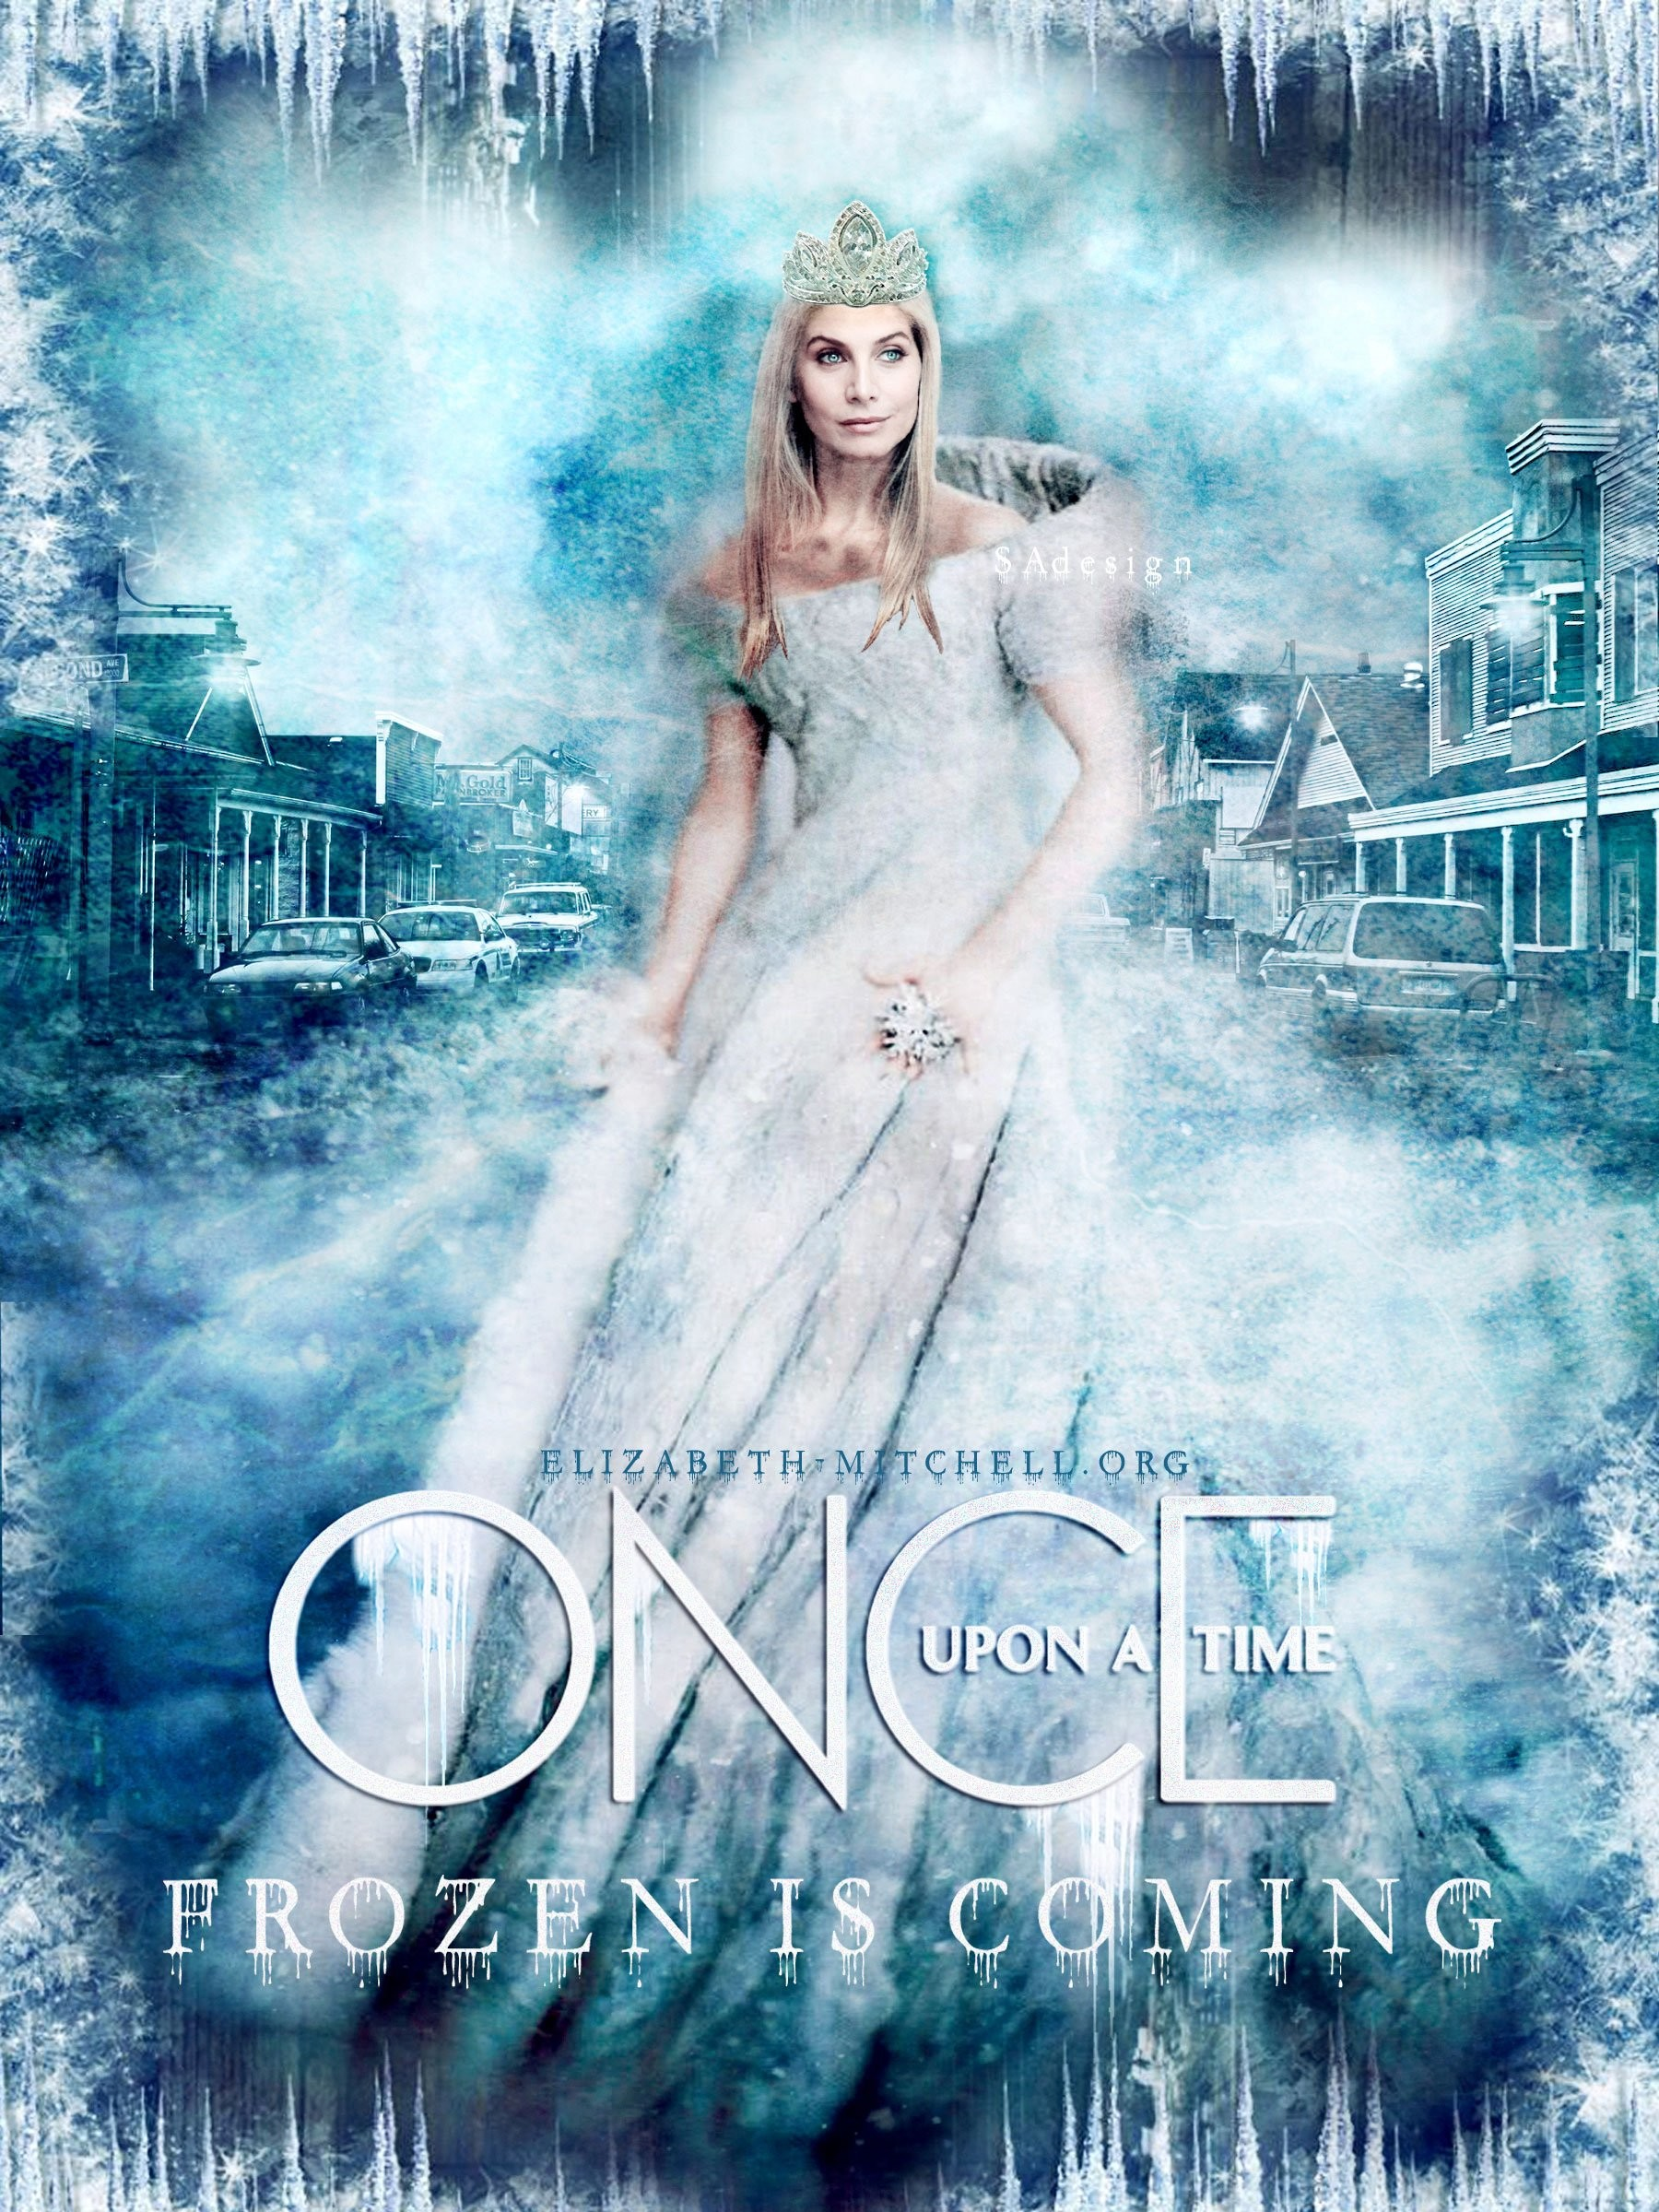 ONCE-UPON-A-TIME fantasy drama mystery once upon time adventure series  disney poster wallpaper | | 803022 | WallpaperUP